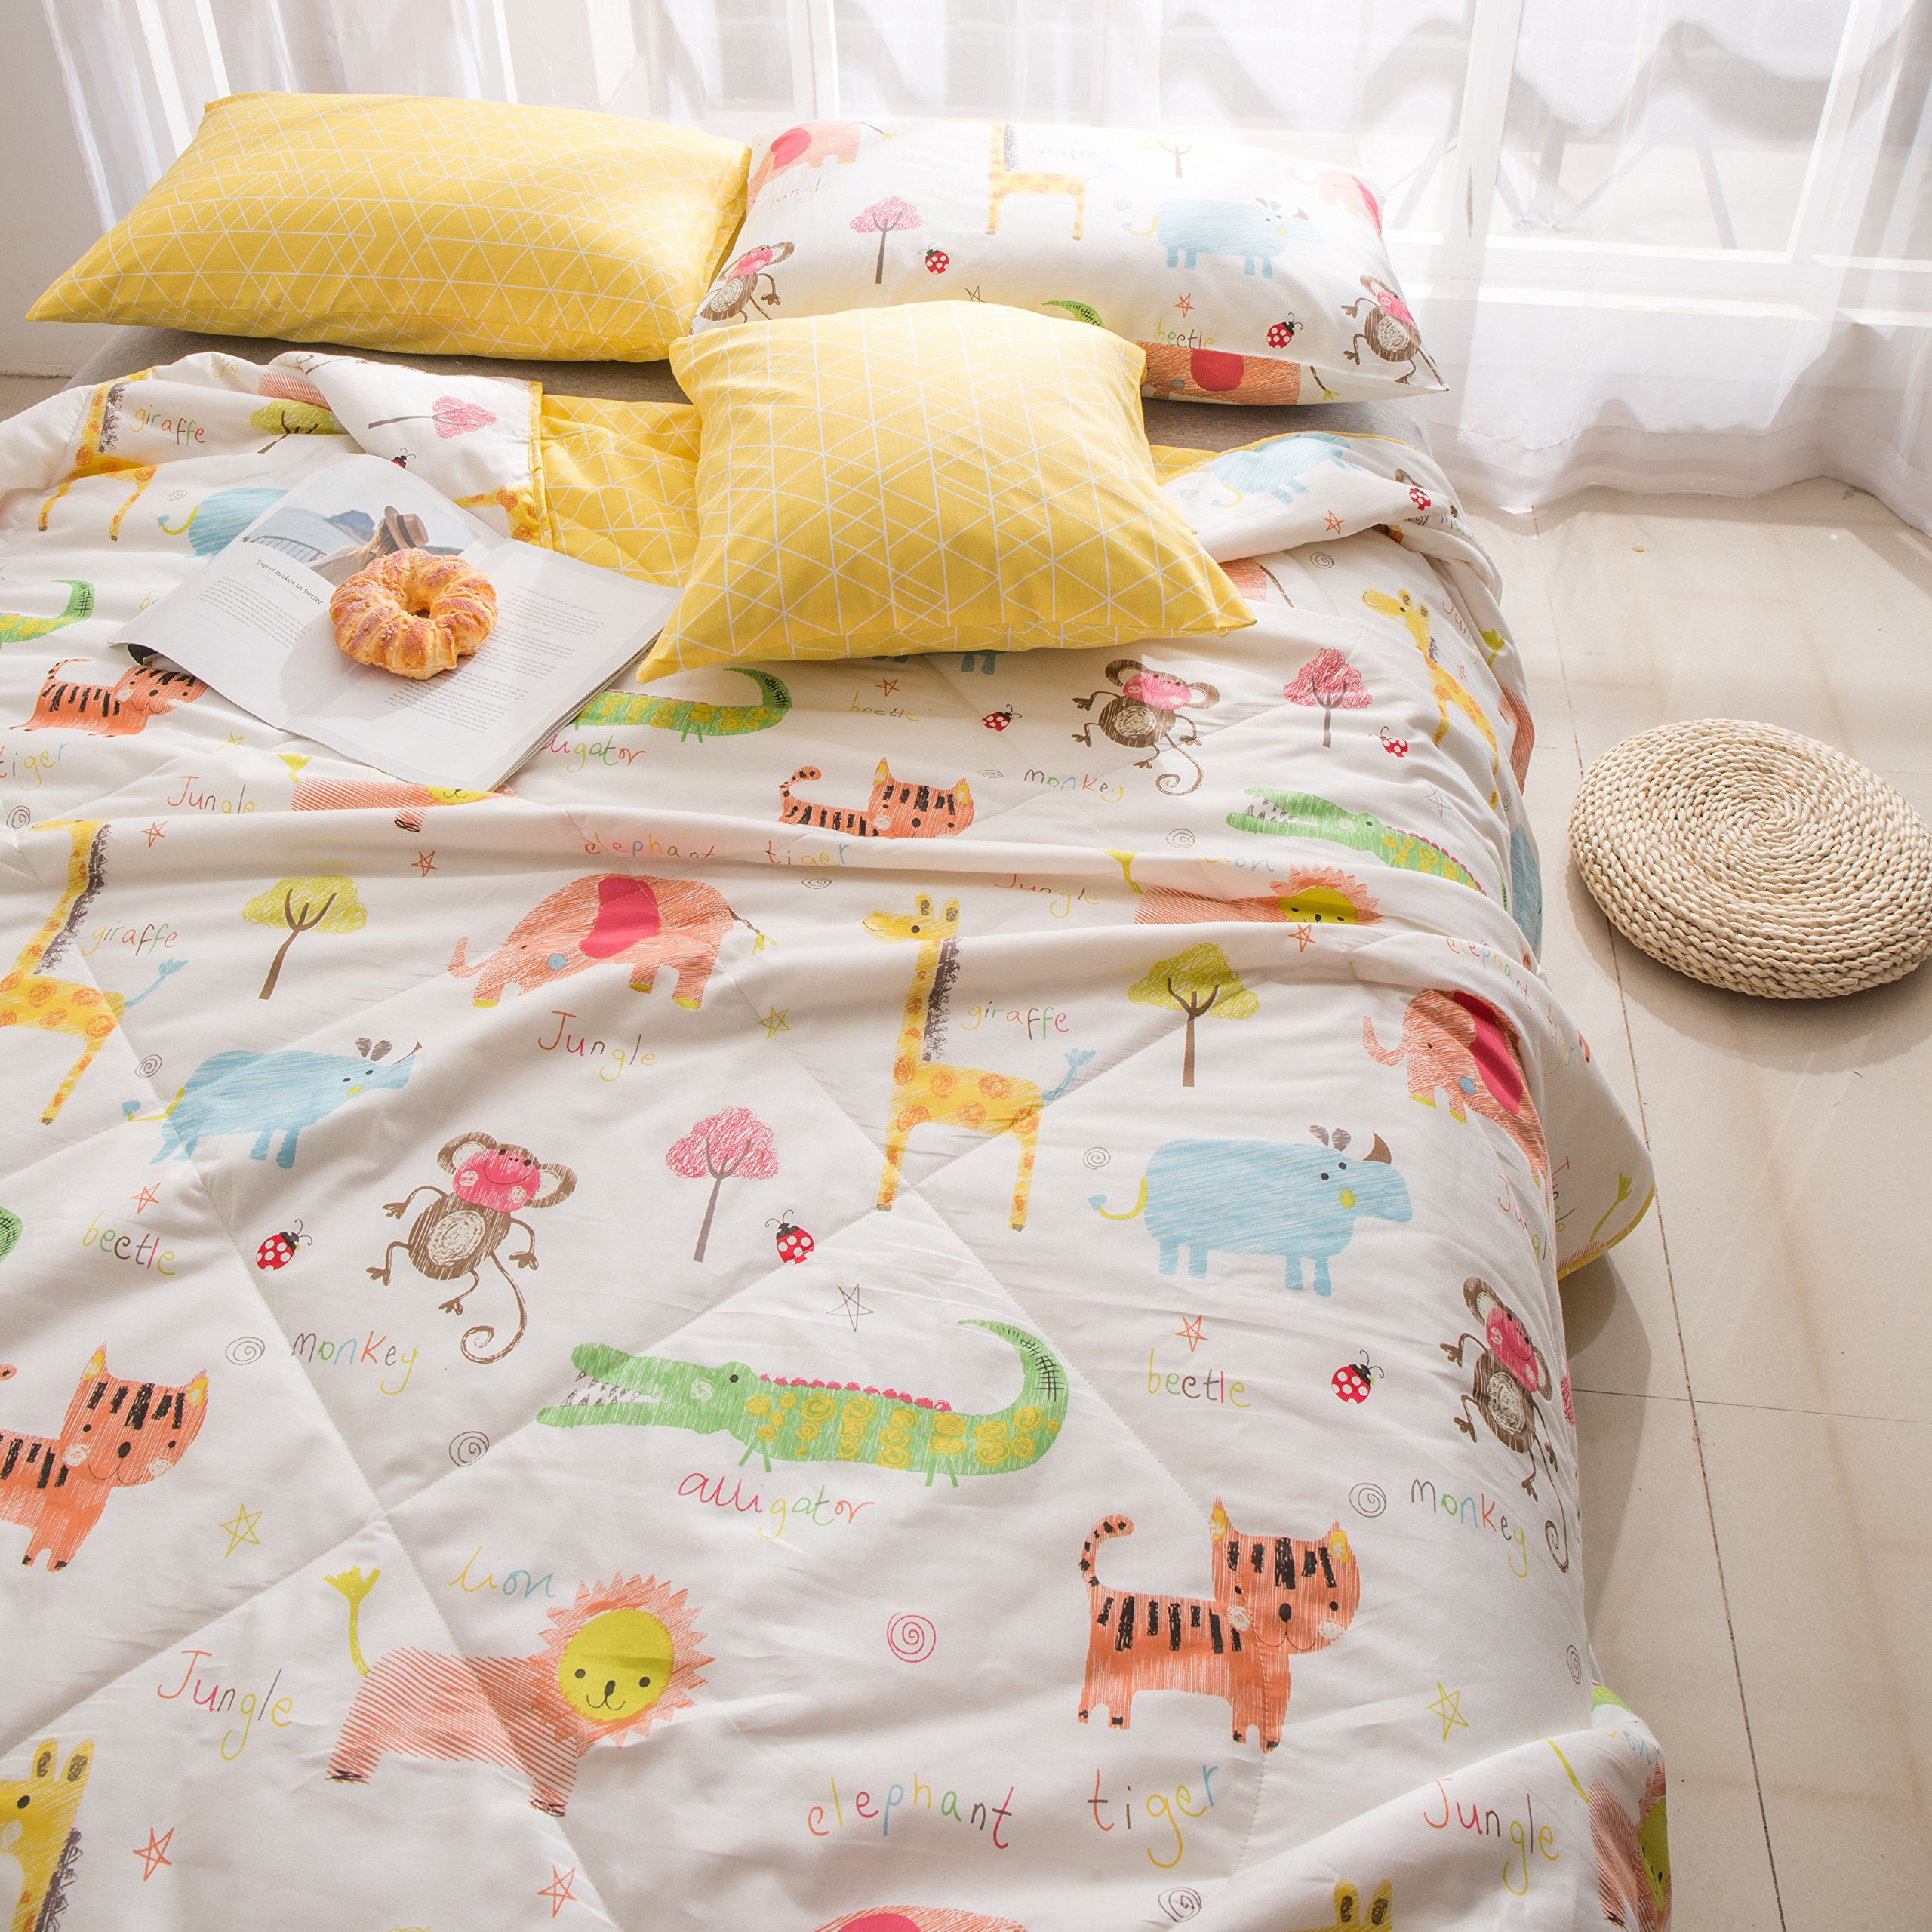 J-pinno Jungle Tiger Elephant Monkey Printed Quilted Comforter Twin Blanket for Kids Bedding (Twin, 22) by J-pinno (Image #2)